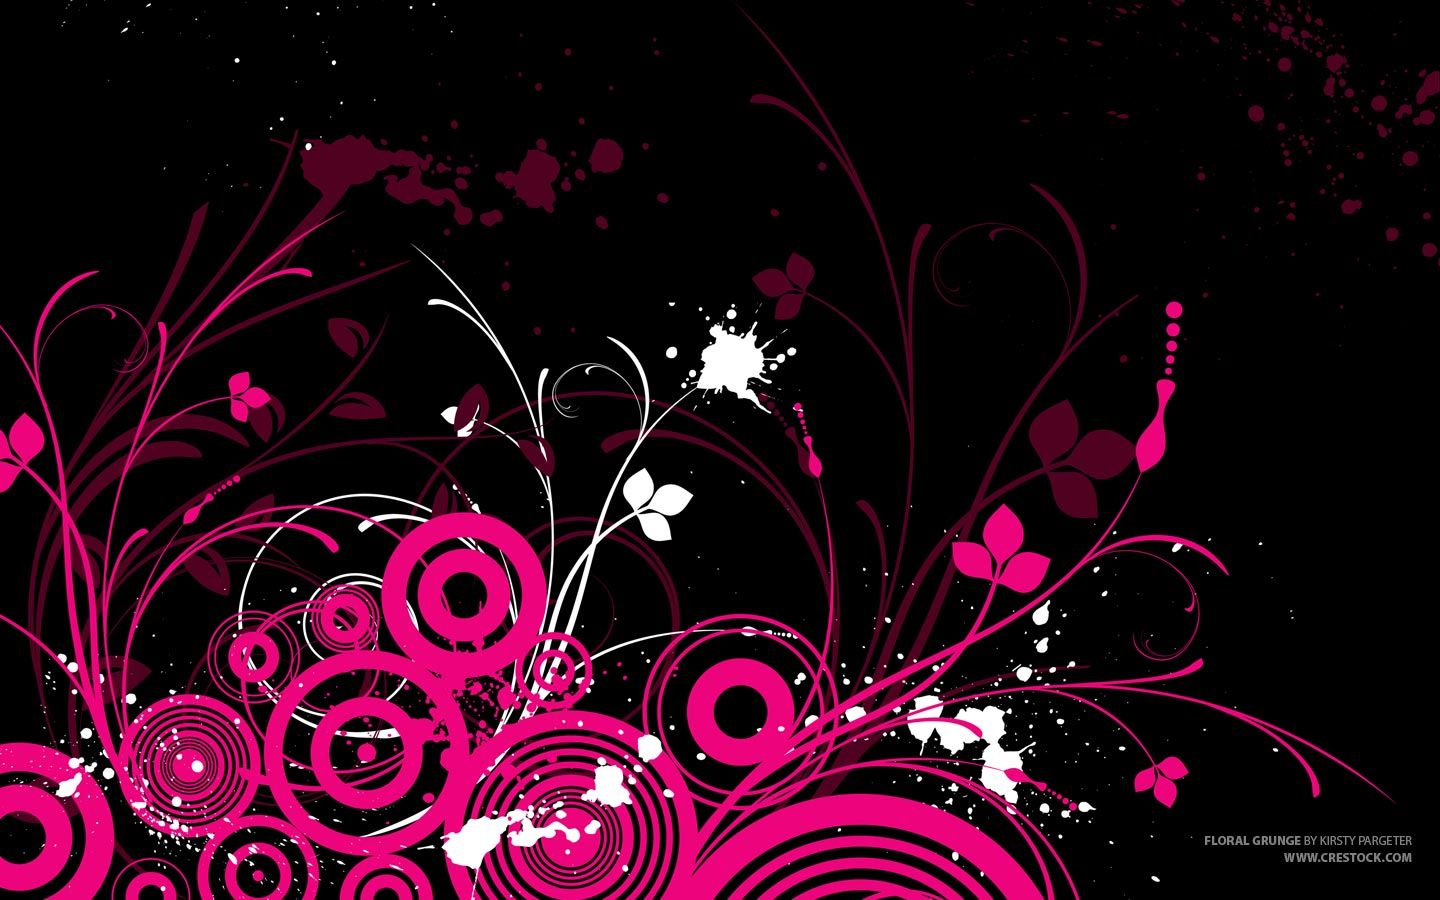 Pin By Ashley Larson On Pictures I Like Pink And Black Wallpaper Cool Background Designs Art Wallpaper